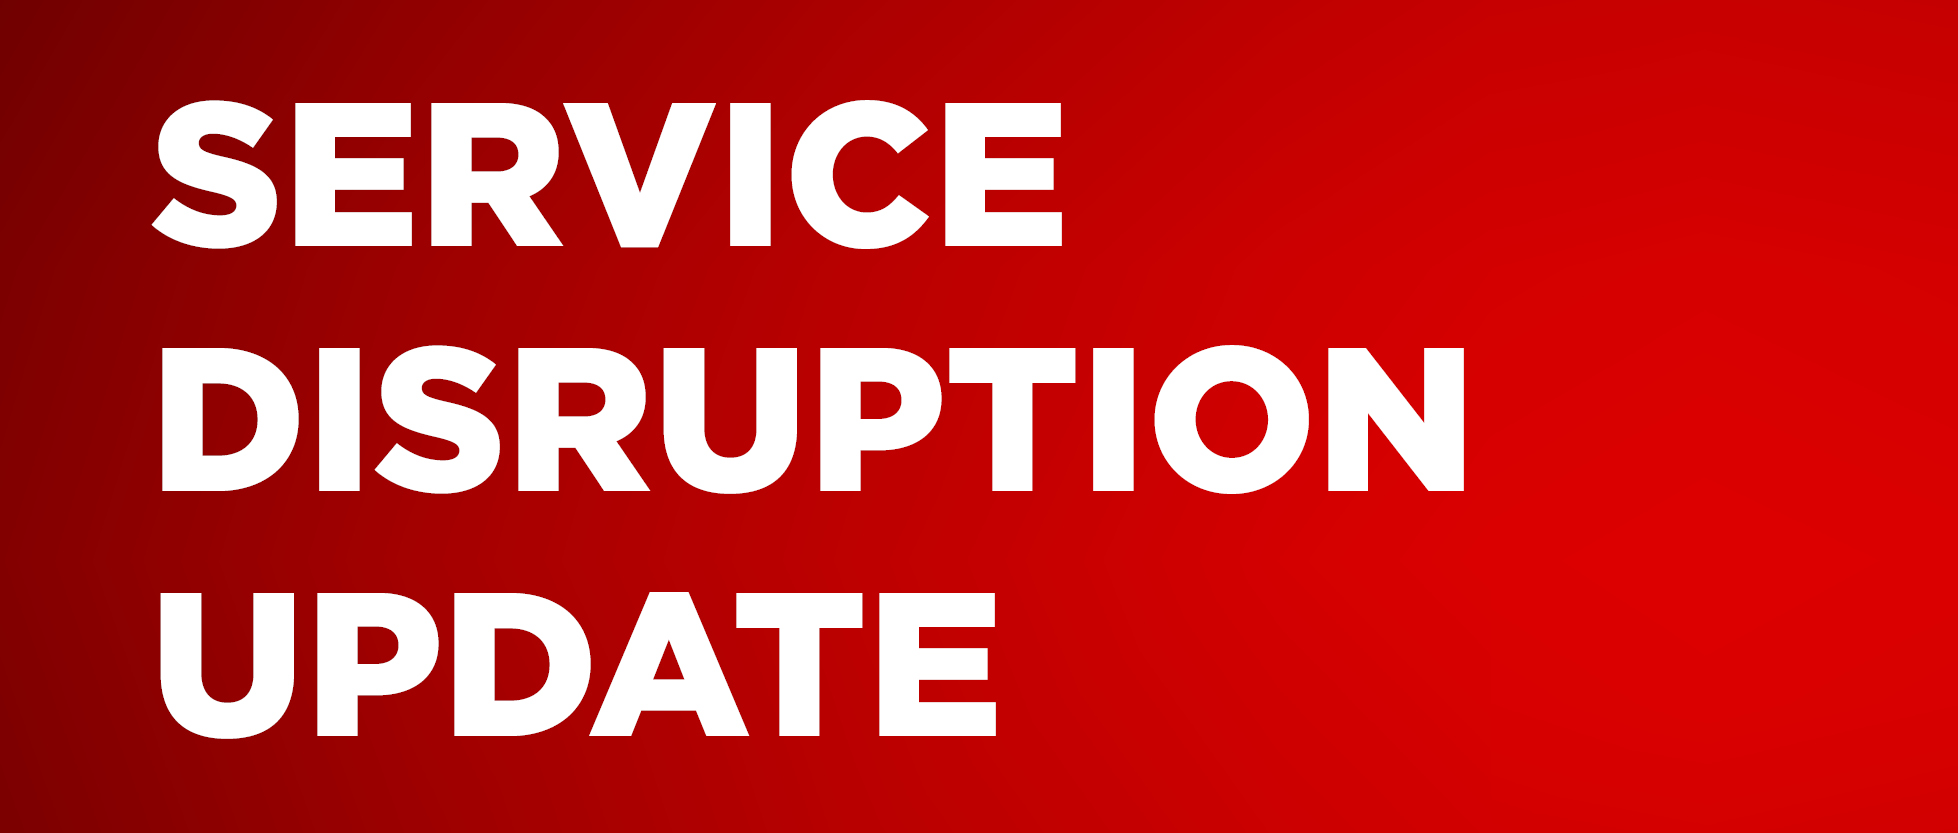 Facebook_Header_Service_Disruption_Update